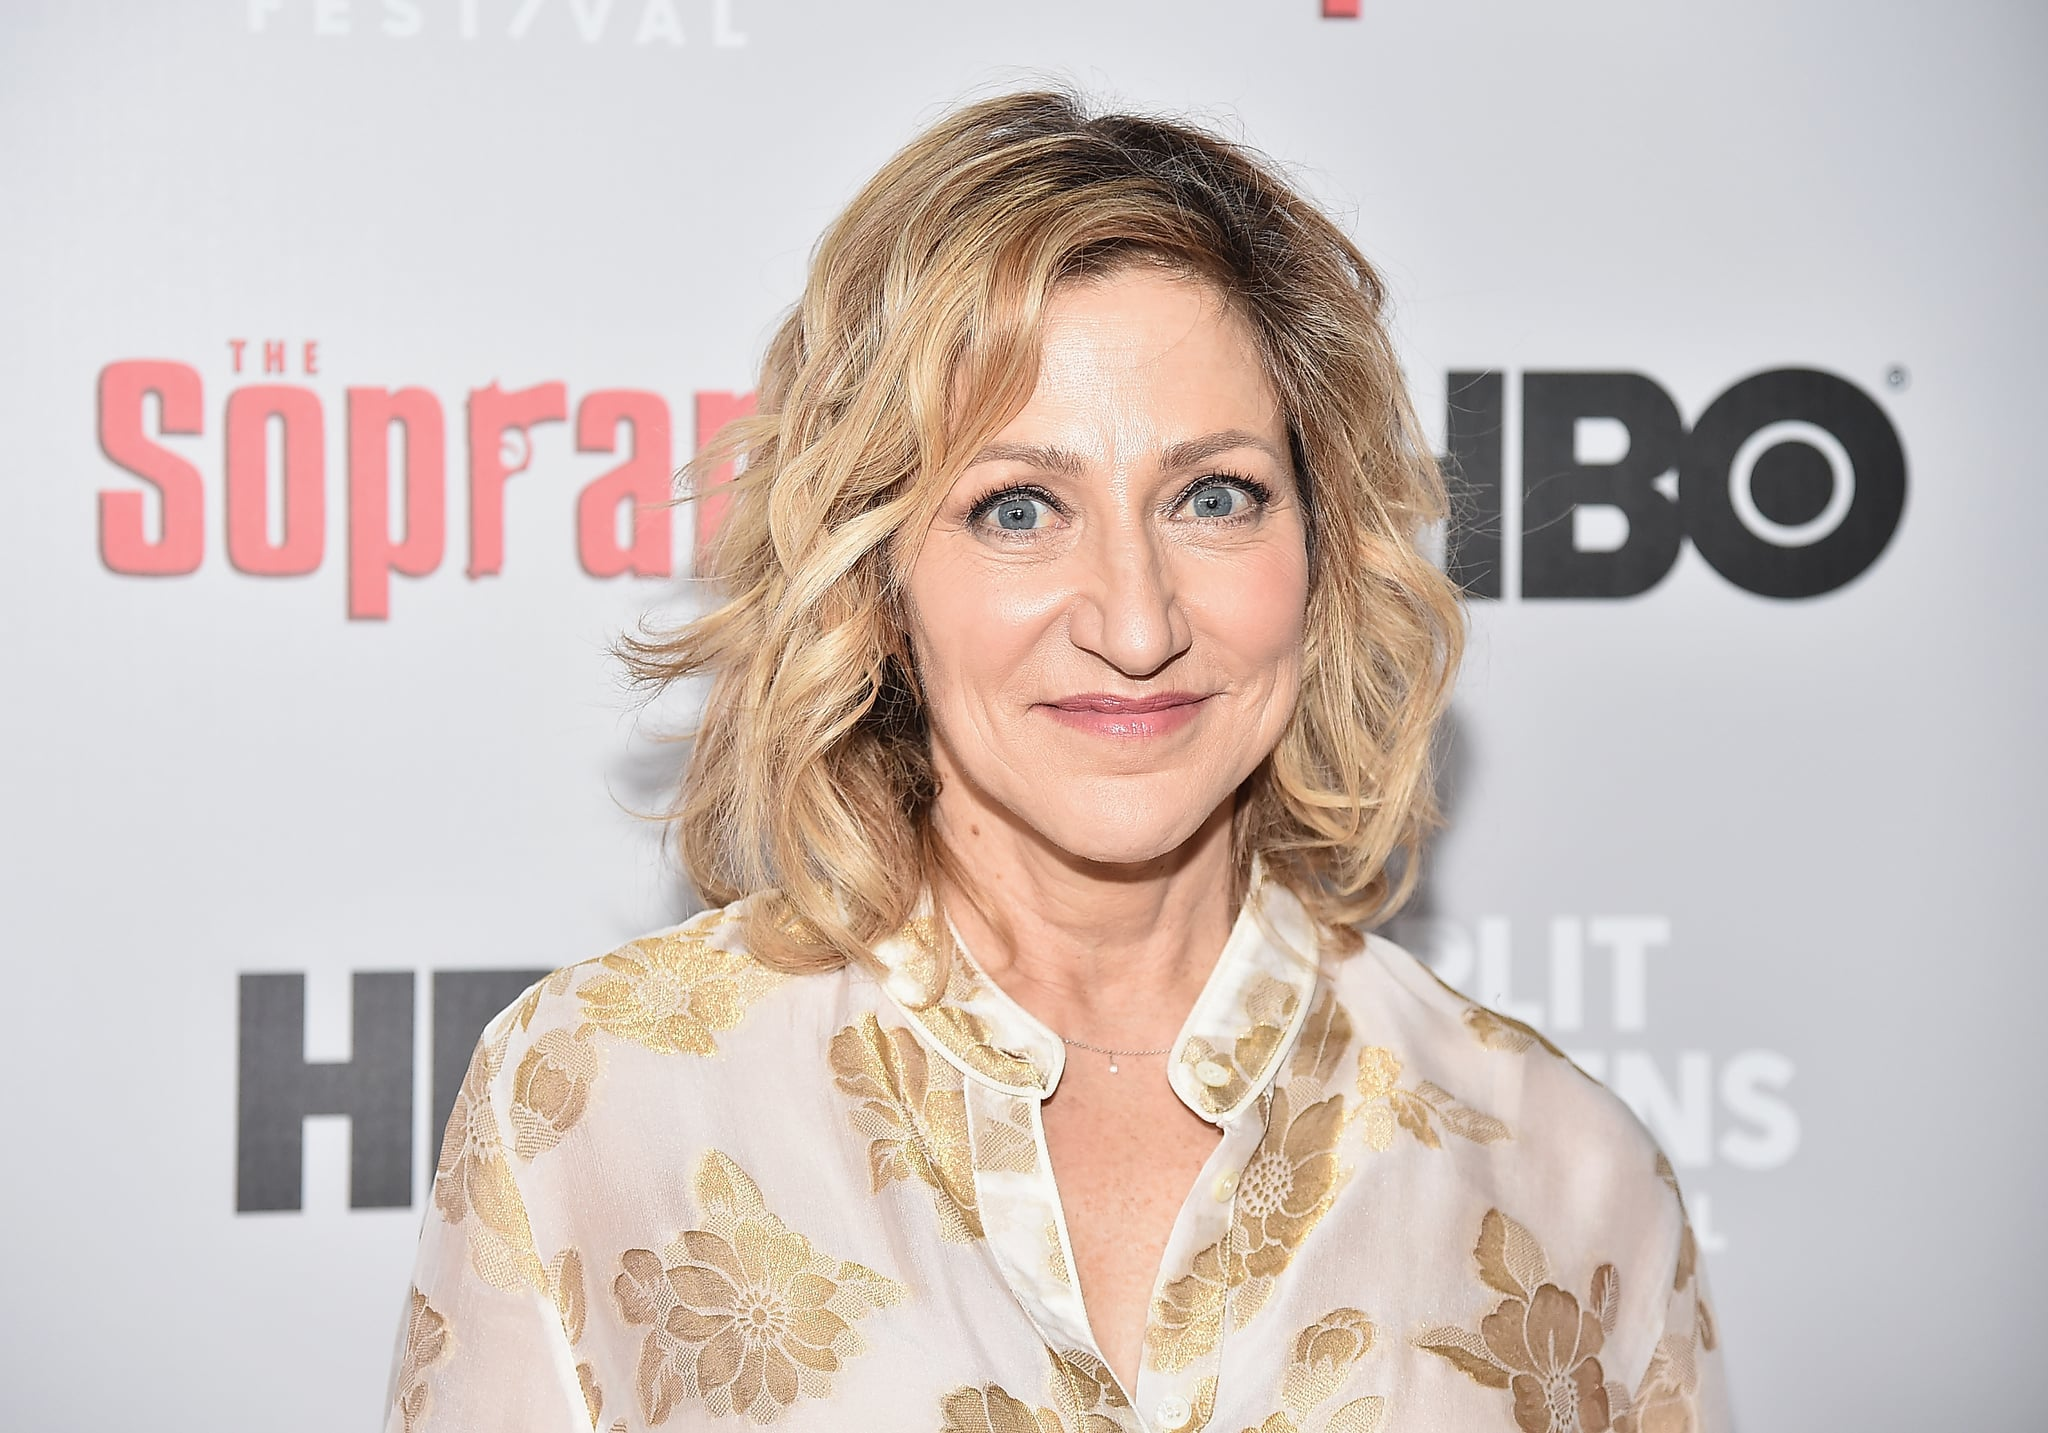 NEW YORK, NEW YORK - JANUARY 09: Edie Falco attends the